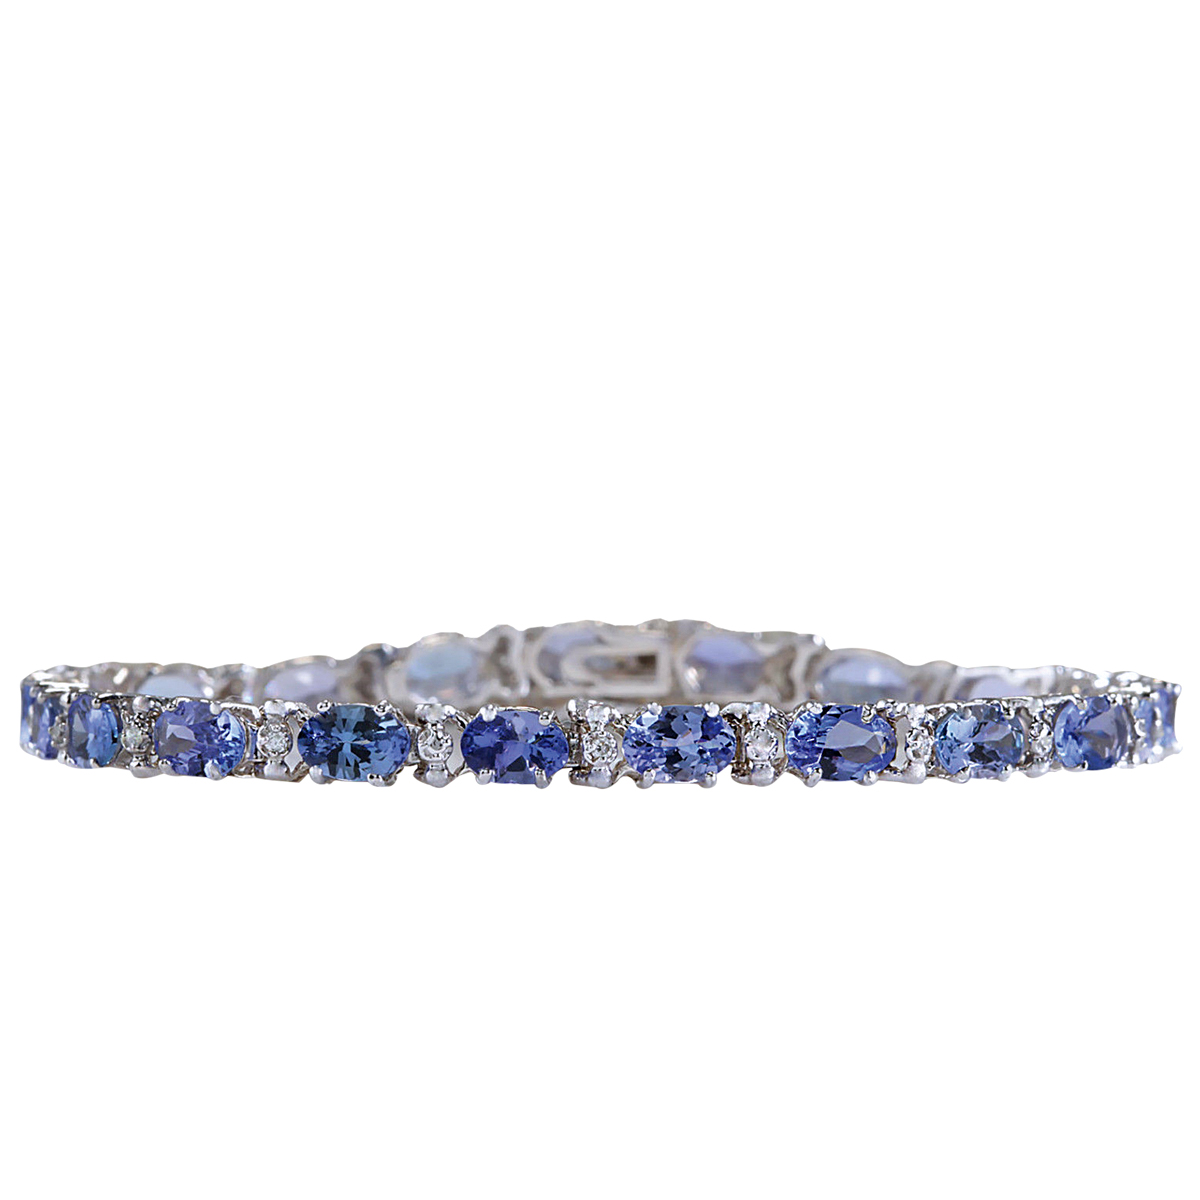 8.74CTW Natural Blue Tanzanite Bracelet In 14K White Gold by